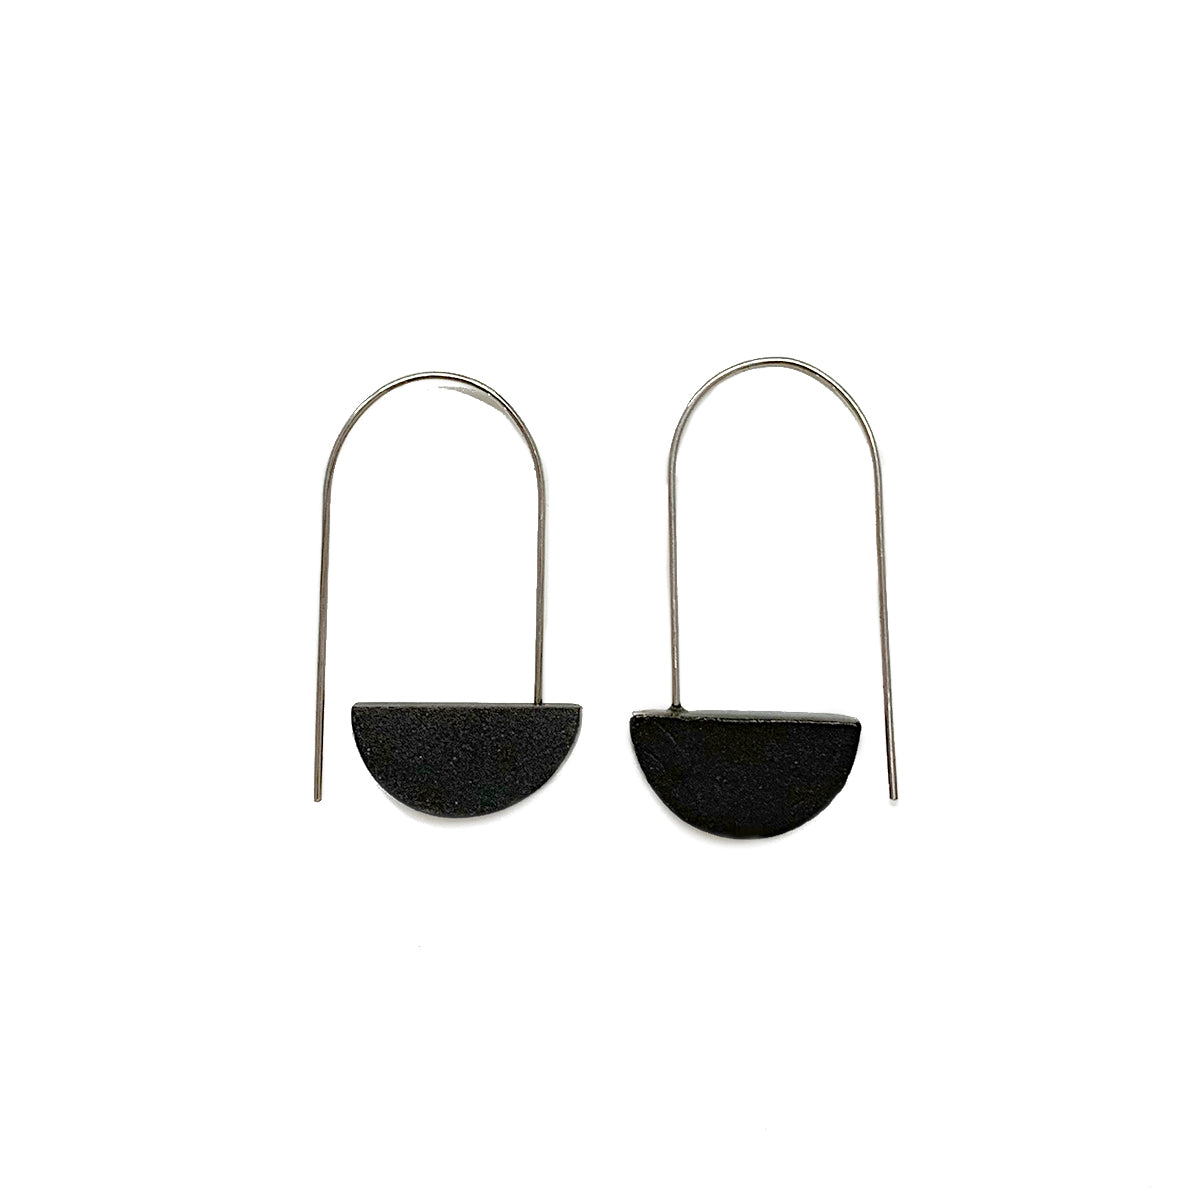 Small Half Moon earrings